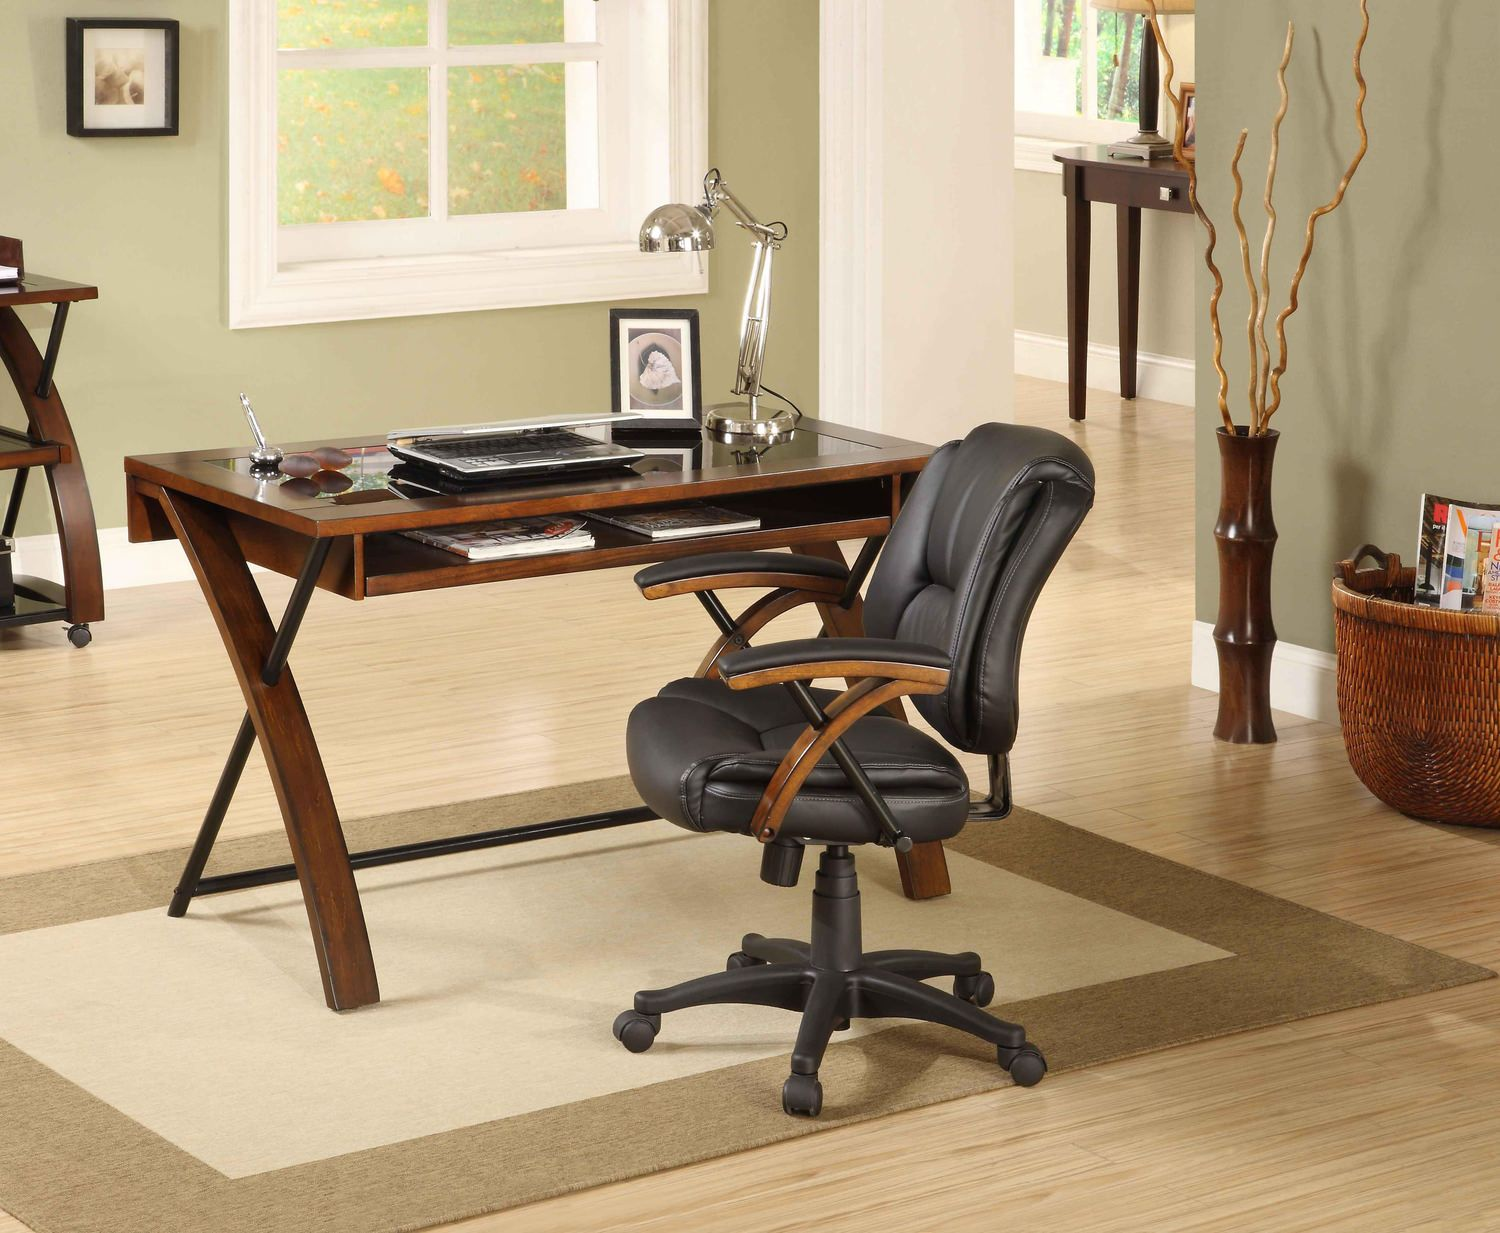 Zeta Desk Chair | HOM Furniture | Furniture Stores In Minneapolis Minnesota  U0026 Midwest